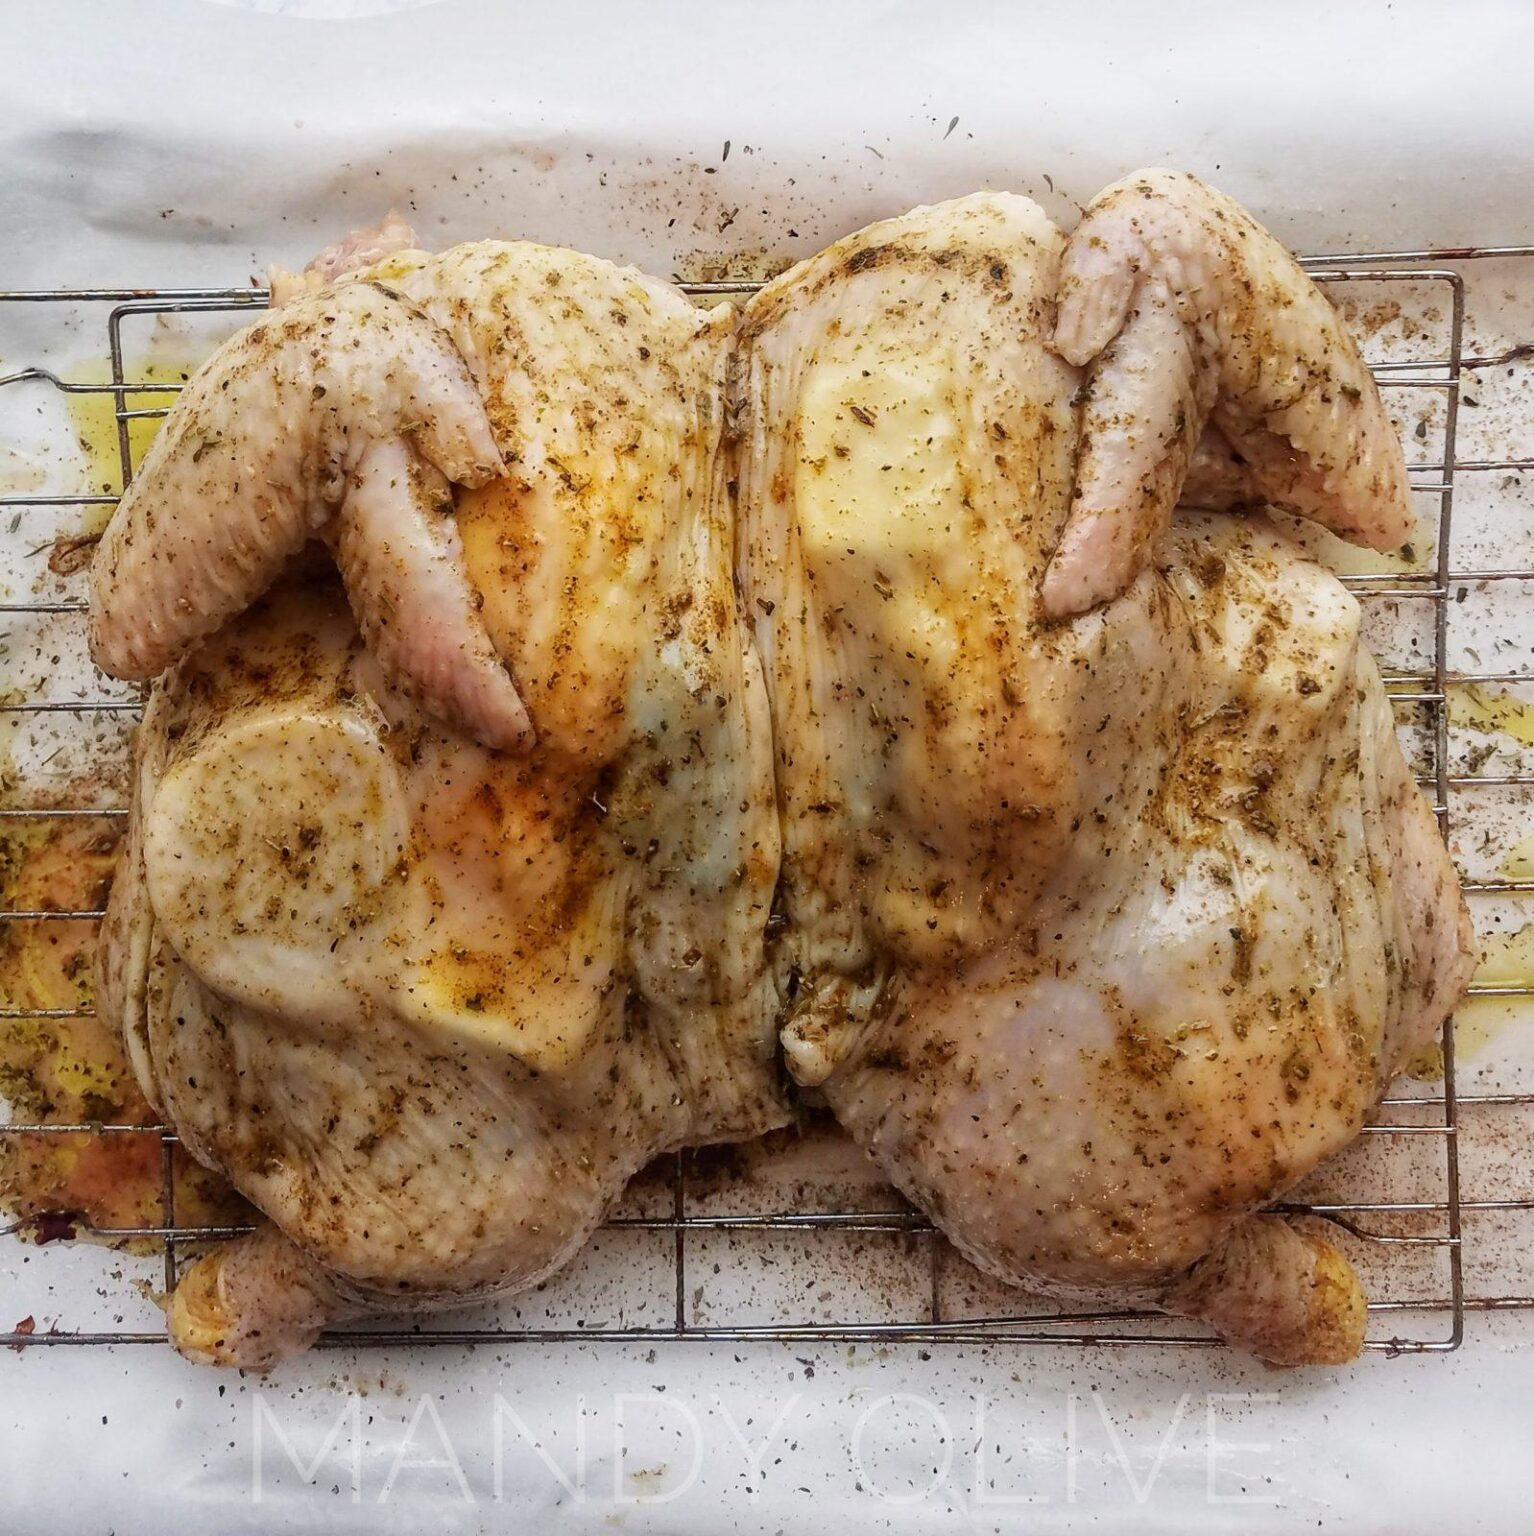 This picture shows a spatchcock chicken stuffed with lemon and butter. This spatchcock chicken recipe is a quick, simple and easy way to make moist juicy chicken with crispy chicken skin. How to roast a whole chicken in the oven on a sheet pan for dinner, meal prep with butterflied chicken. What to do with a whole chicken? How to bake a whole chicken for dinner idea and meal prepping.